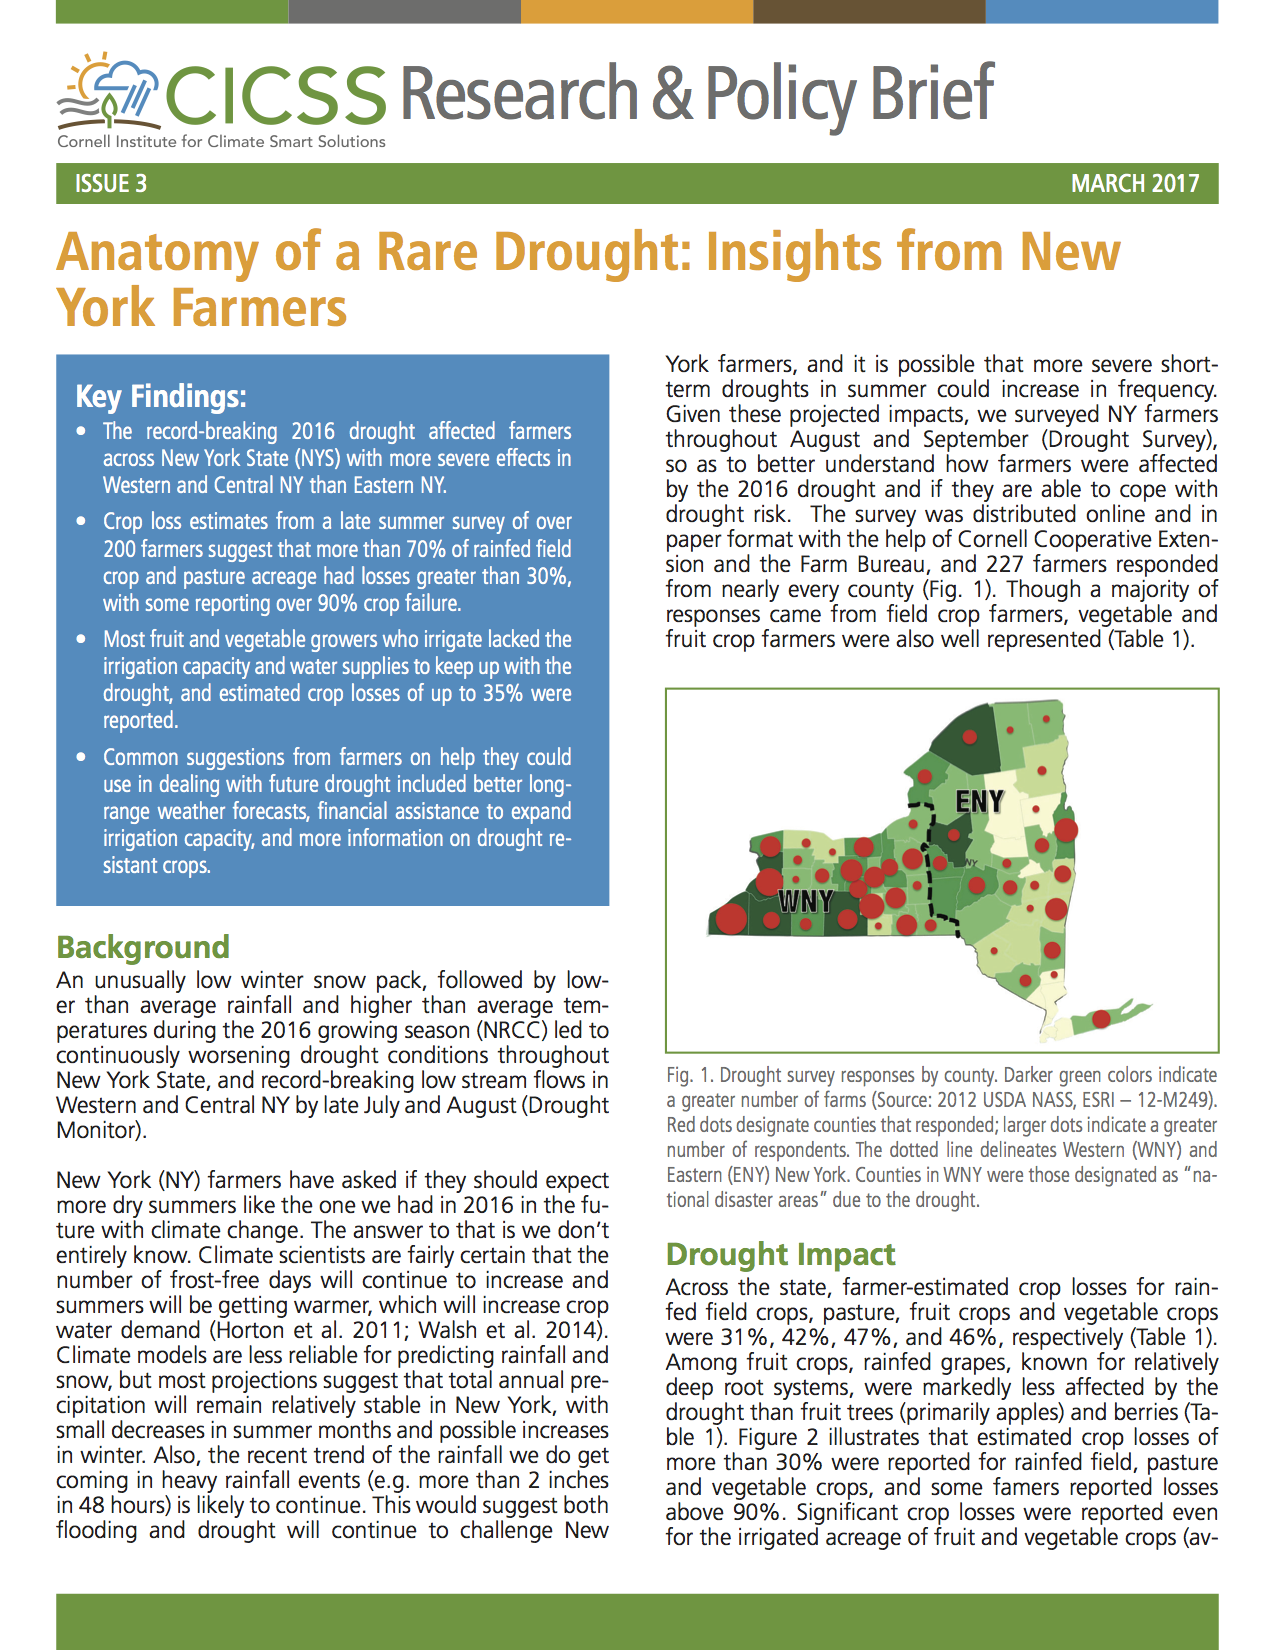 Nrcc drought page survey of new york farmers fandeluxe Image collections